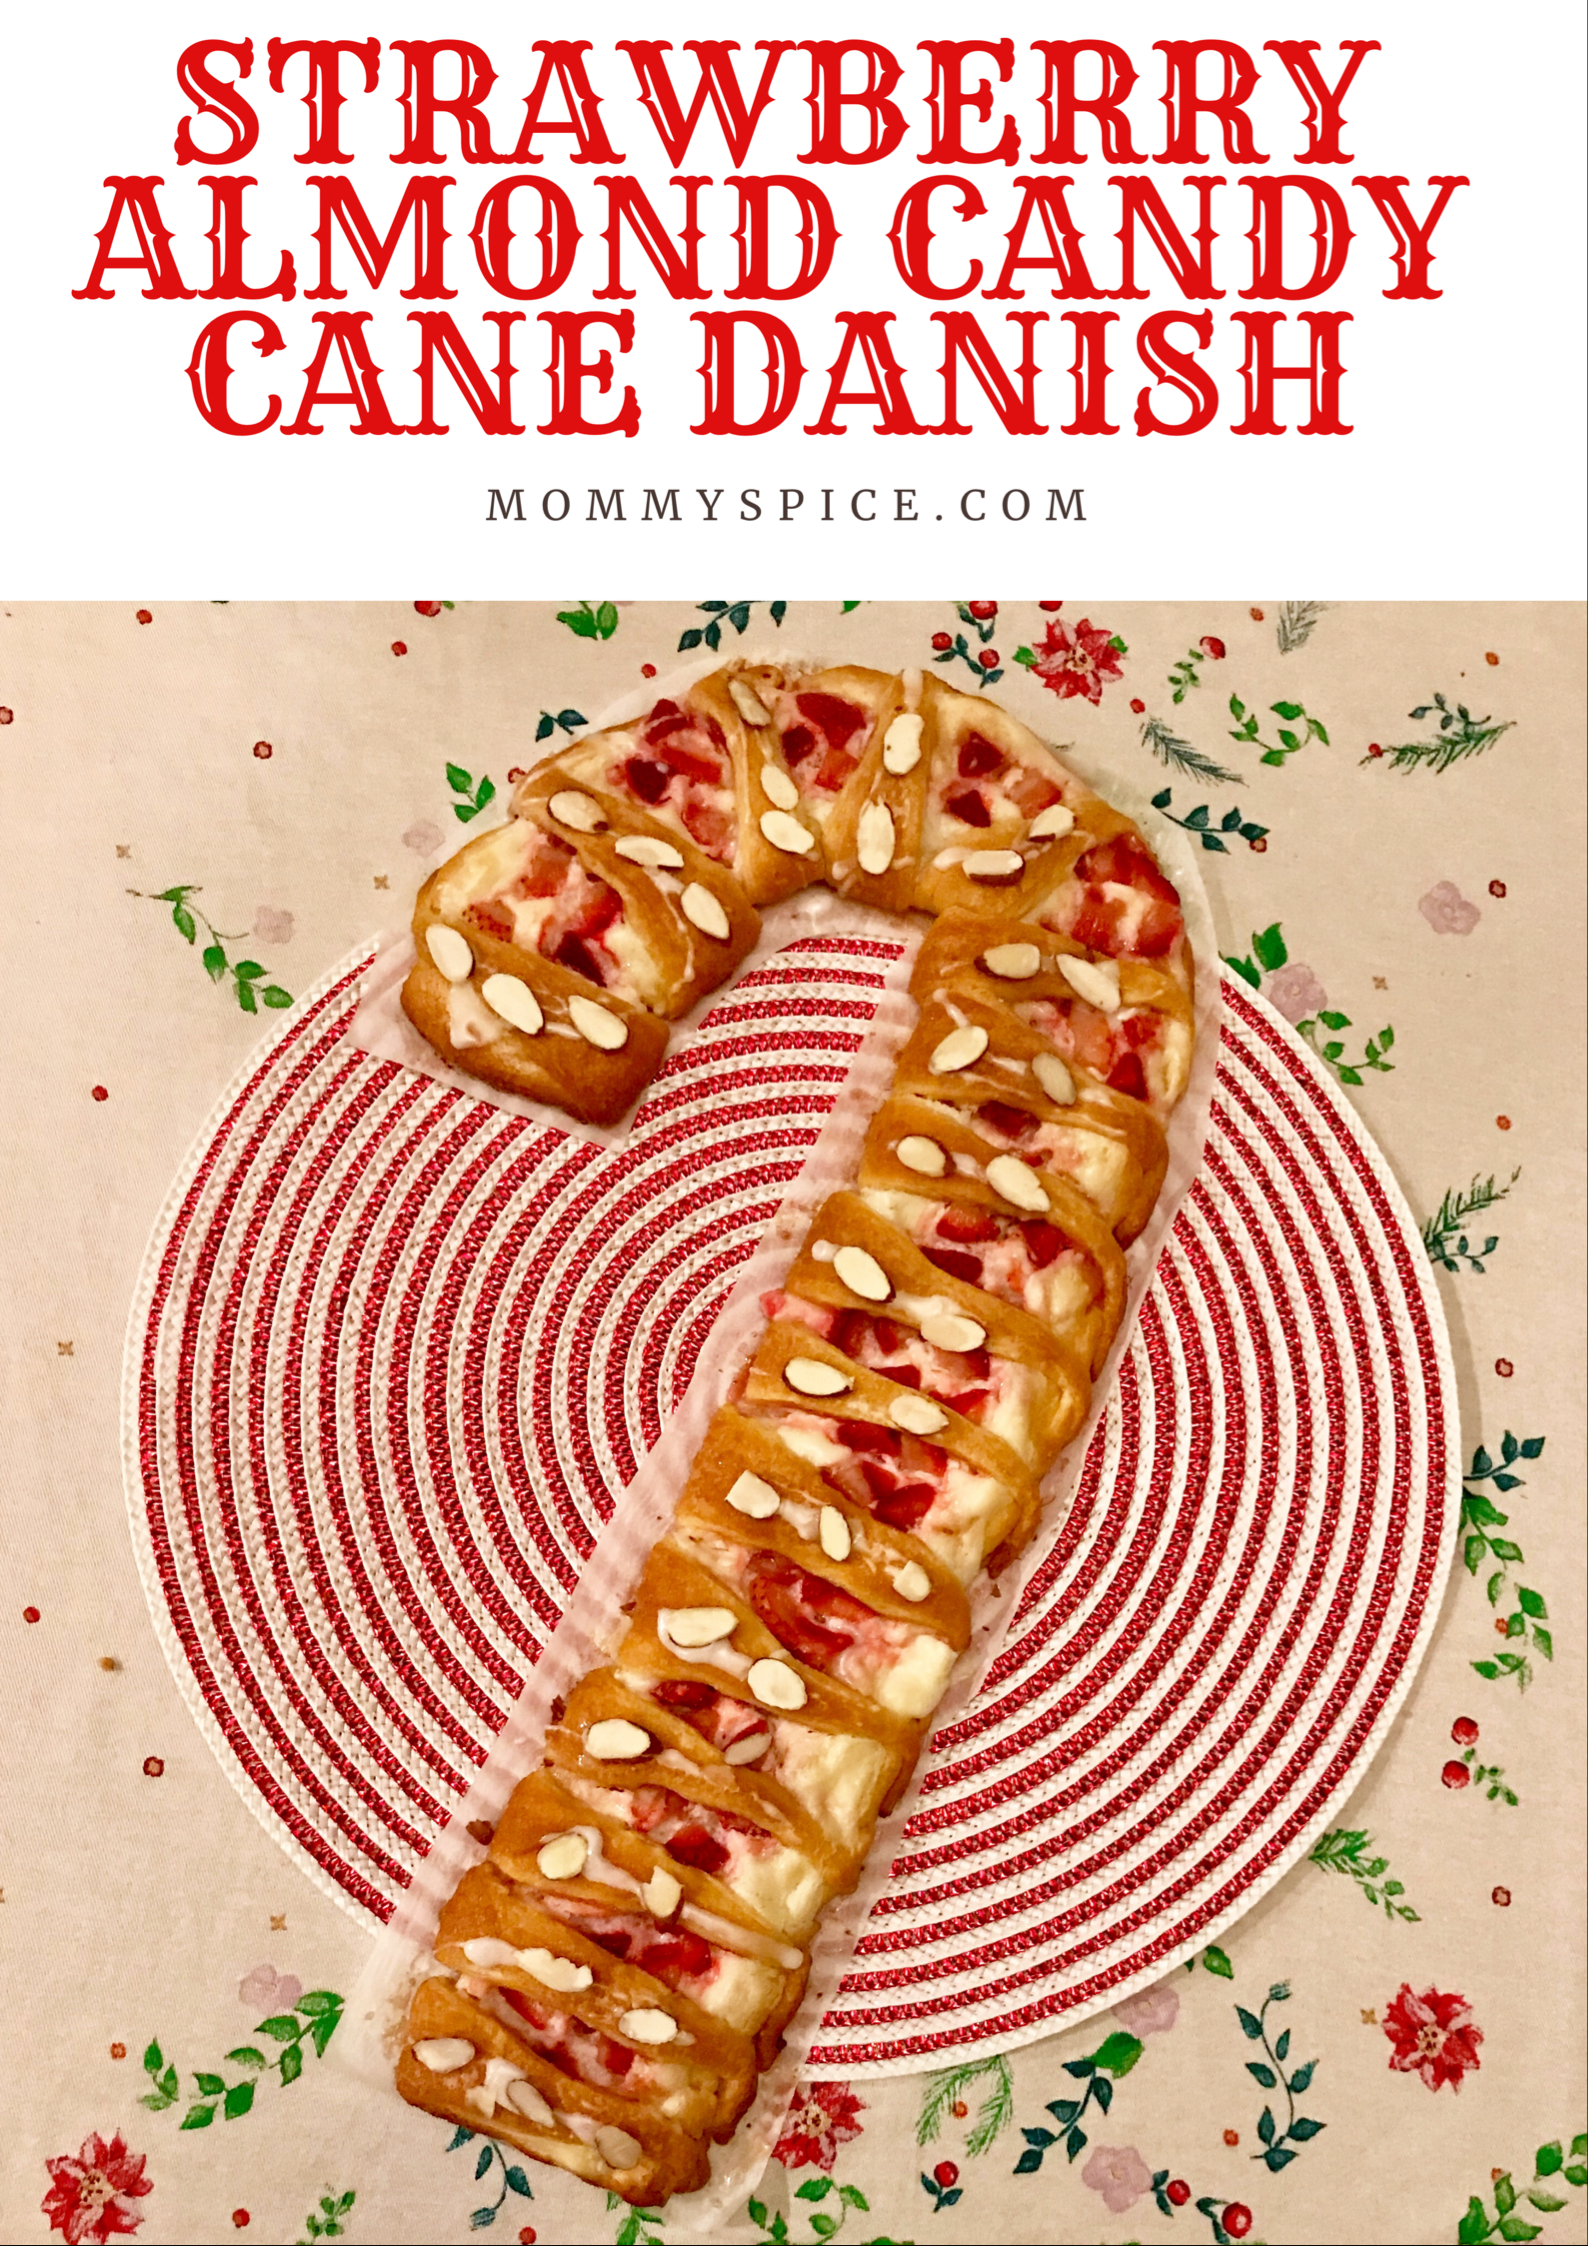 Strawberry Almond Candy Cane Danish